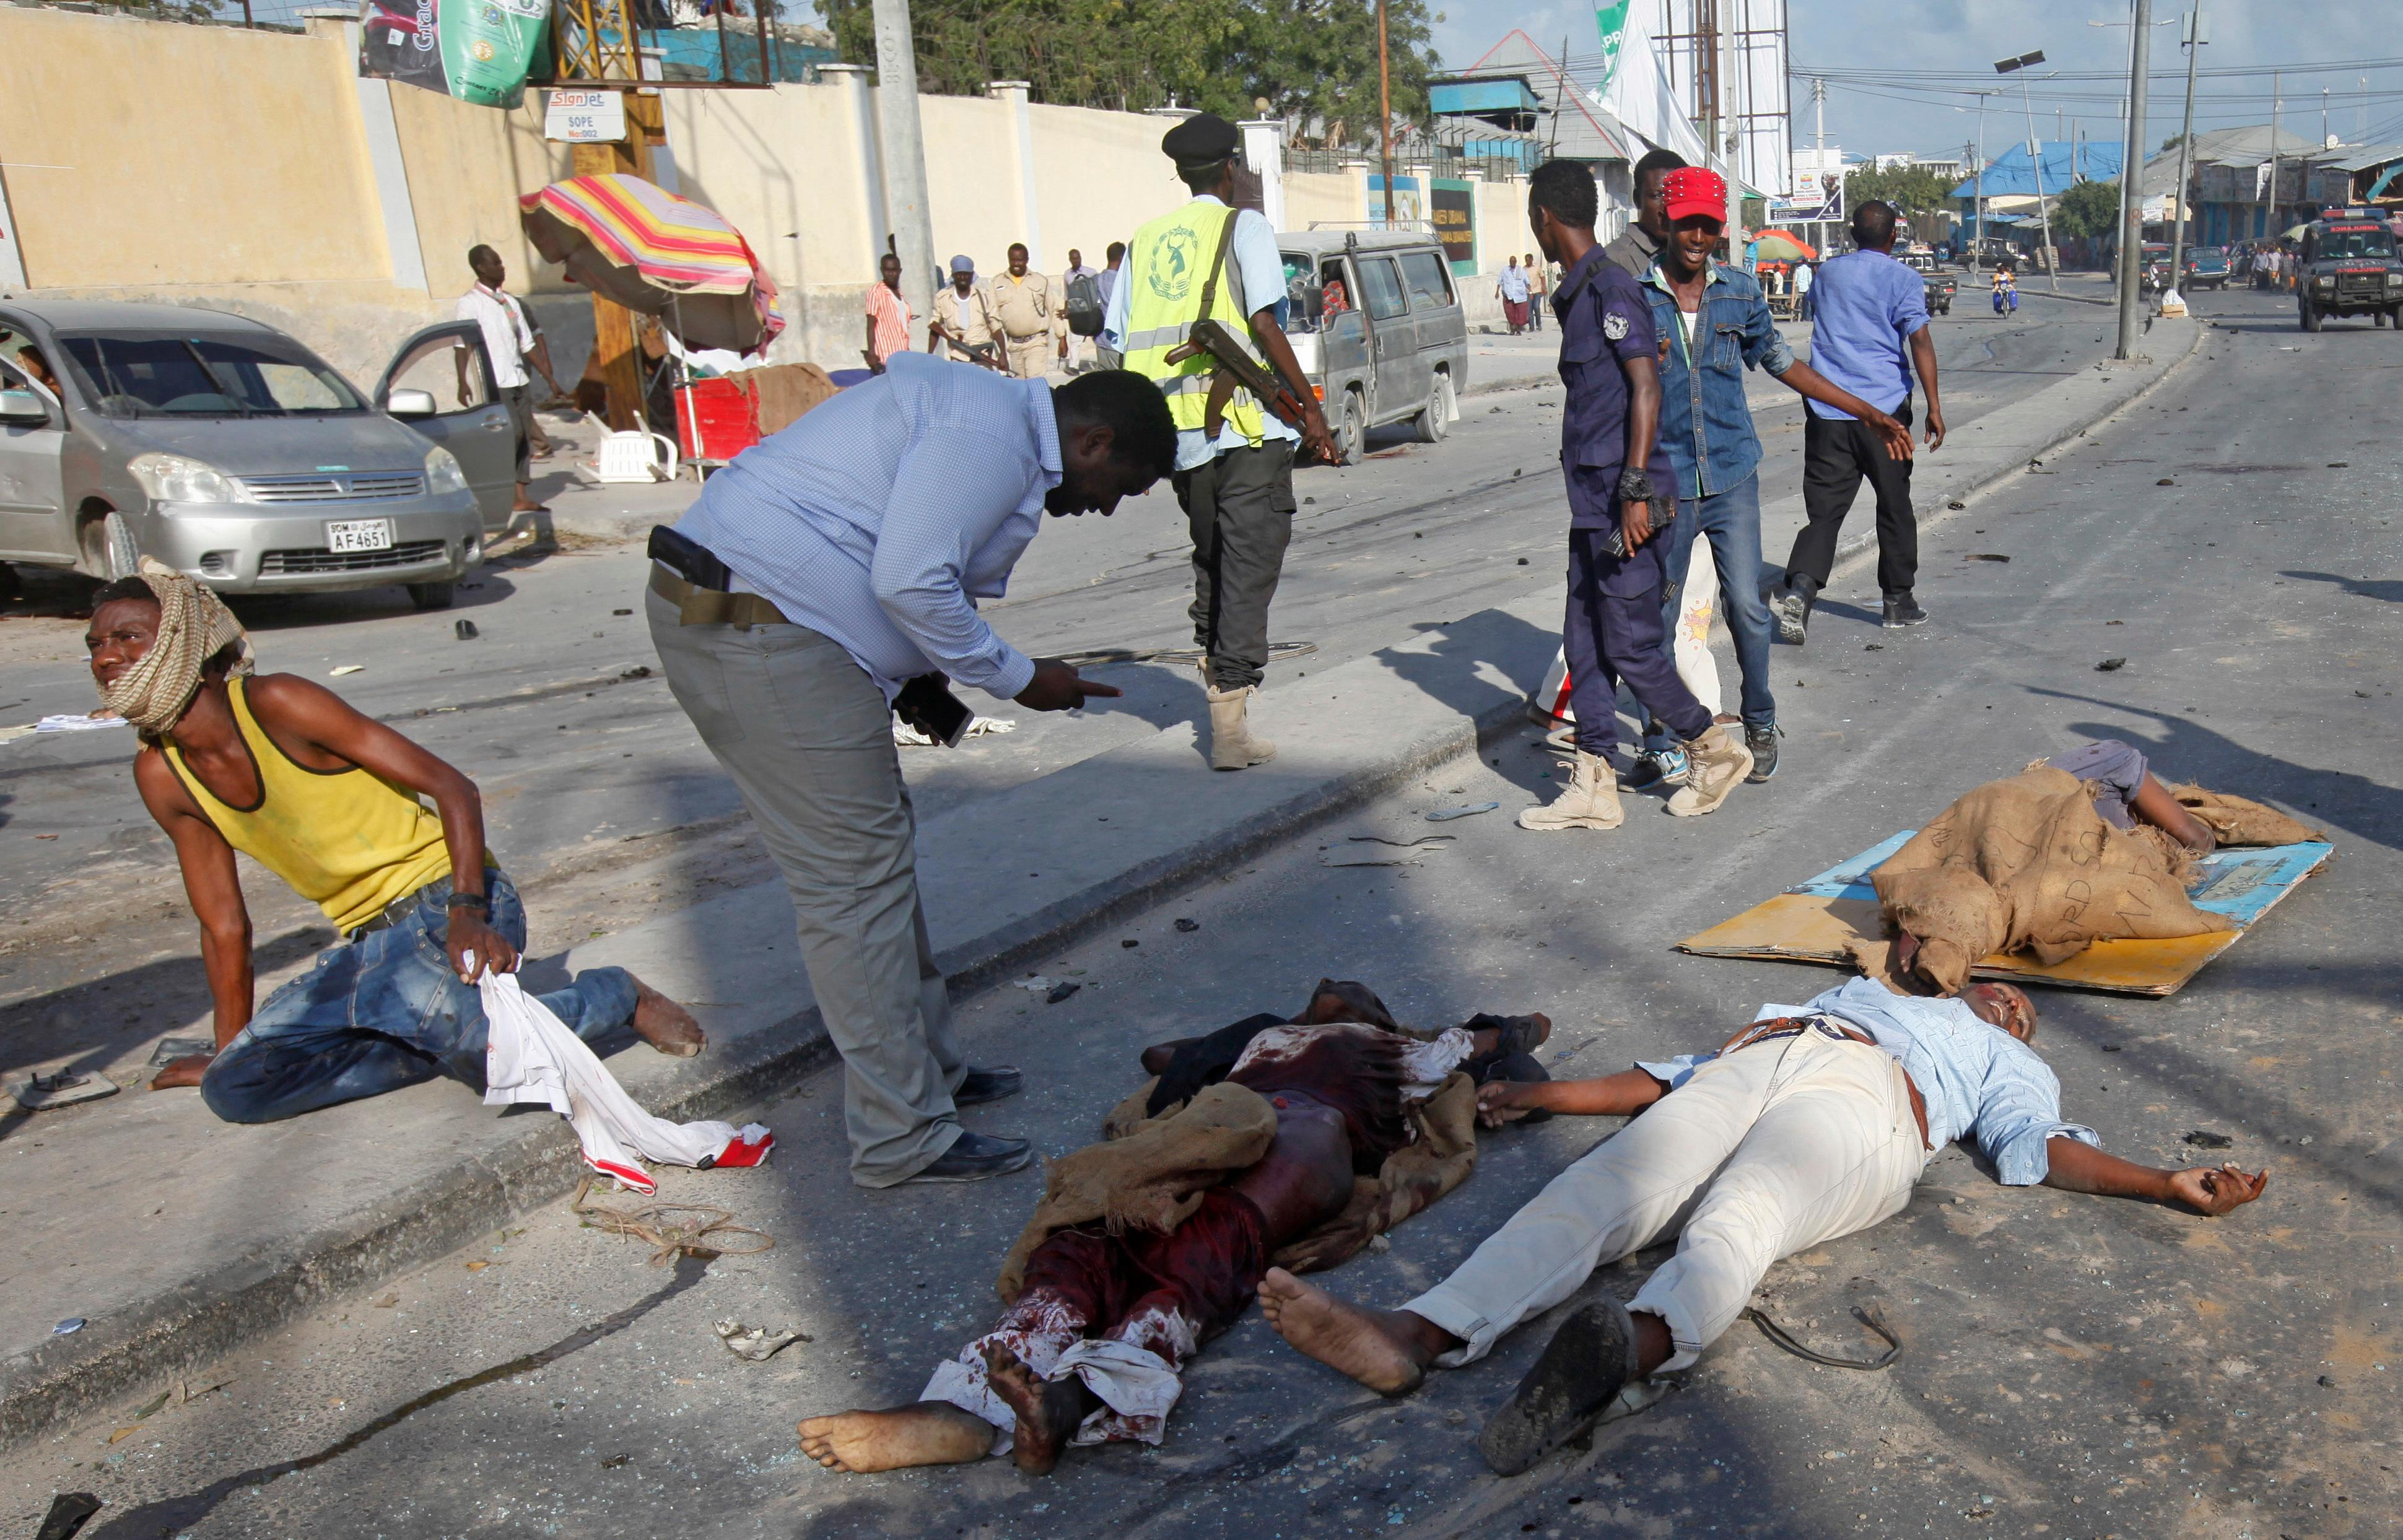 EDS NOTE GRAPHIC CONTENT Wounded and dead lie in the street at the scene of a blast in the capital Mogadishu, Somalia Saturday, Oct. 14, 2017. A huge explosion from a truck bomb has killed at least 20 people in Somalia's capital, police said Saturday, as shaken residents called it the most powerful blast they'd heard in years. (AP Photo/Farah Abdi Warsameh)